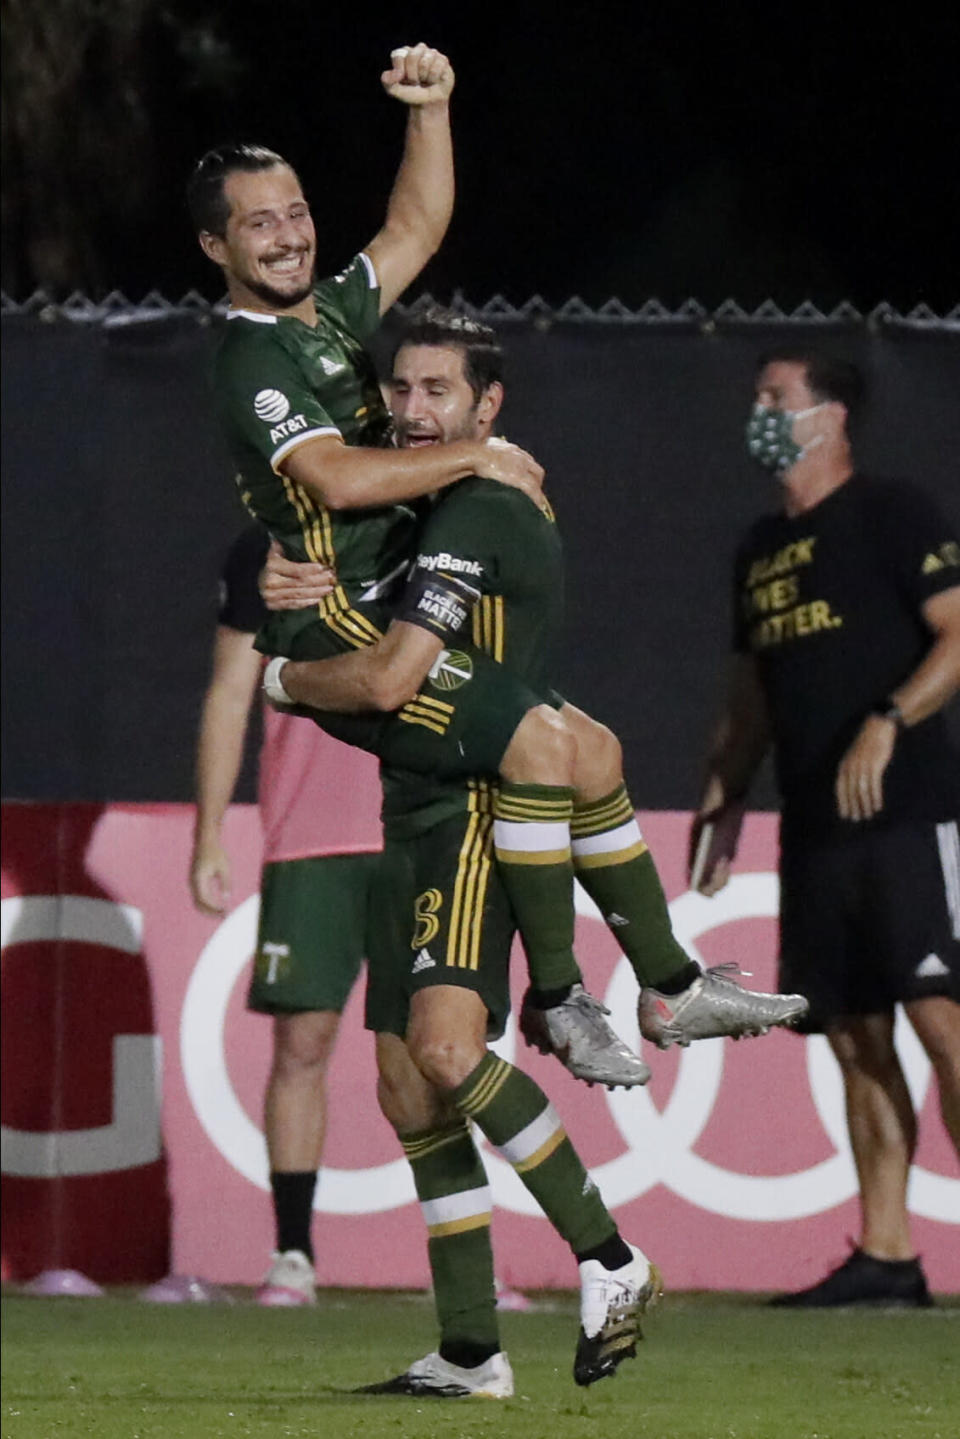 Portland Timbers midfielder Sebastian Blanco, top, celebrates his goal with Diego Valeri against the Philadelphia Union during the second half of an MLS soccer match, Wednesday, Aug. 5, 2020, in Kissimmee, Fla. (AP Photo/John Raoux)